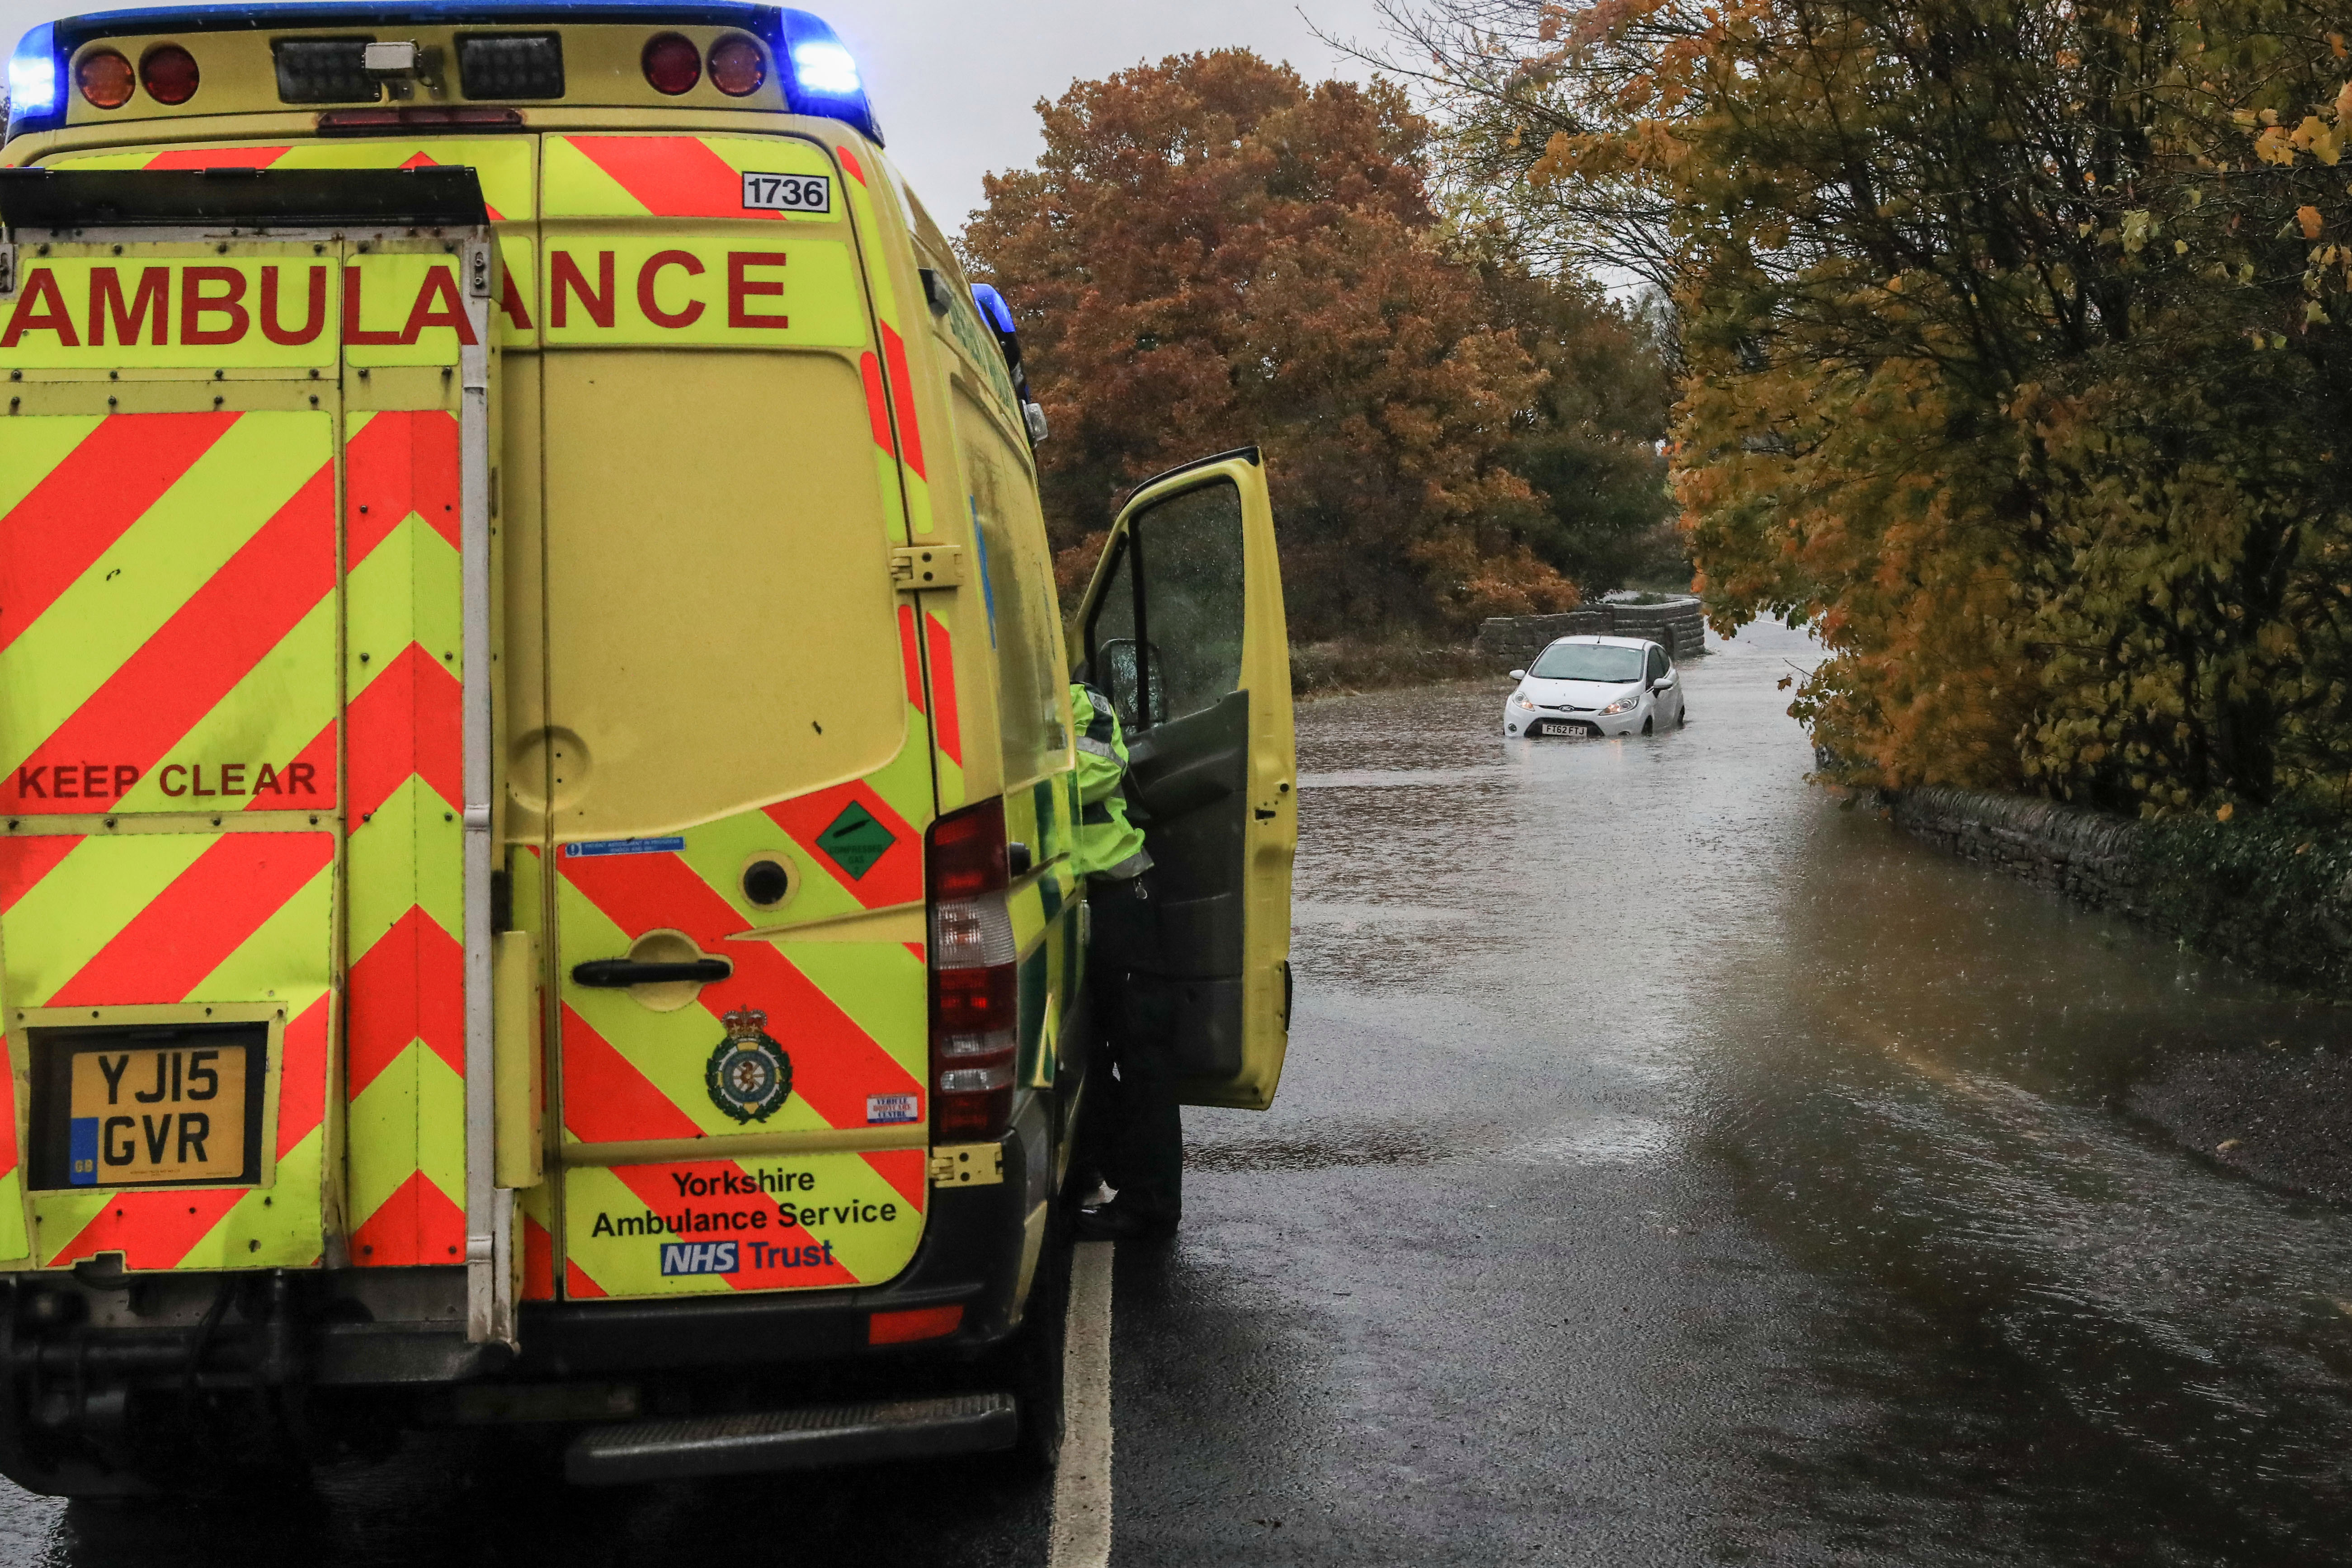 An ambulance stops to help rescue occupants of a white Ford Fiesta as it gets stranded in flood water in Penistone, Barnsley